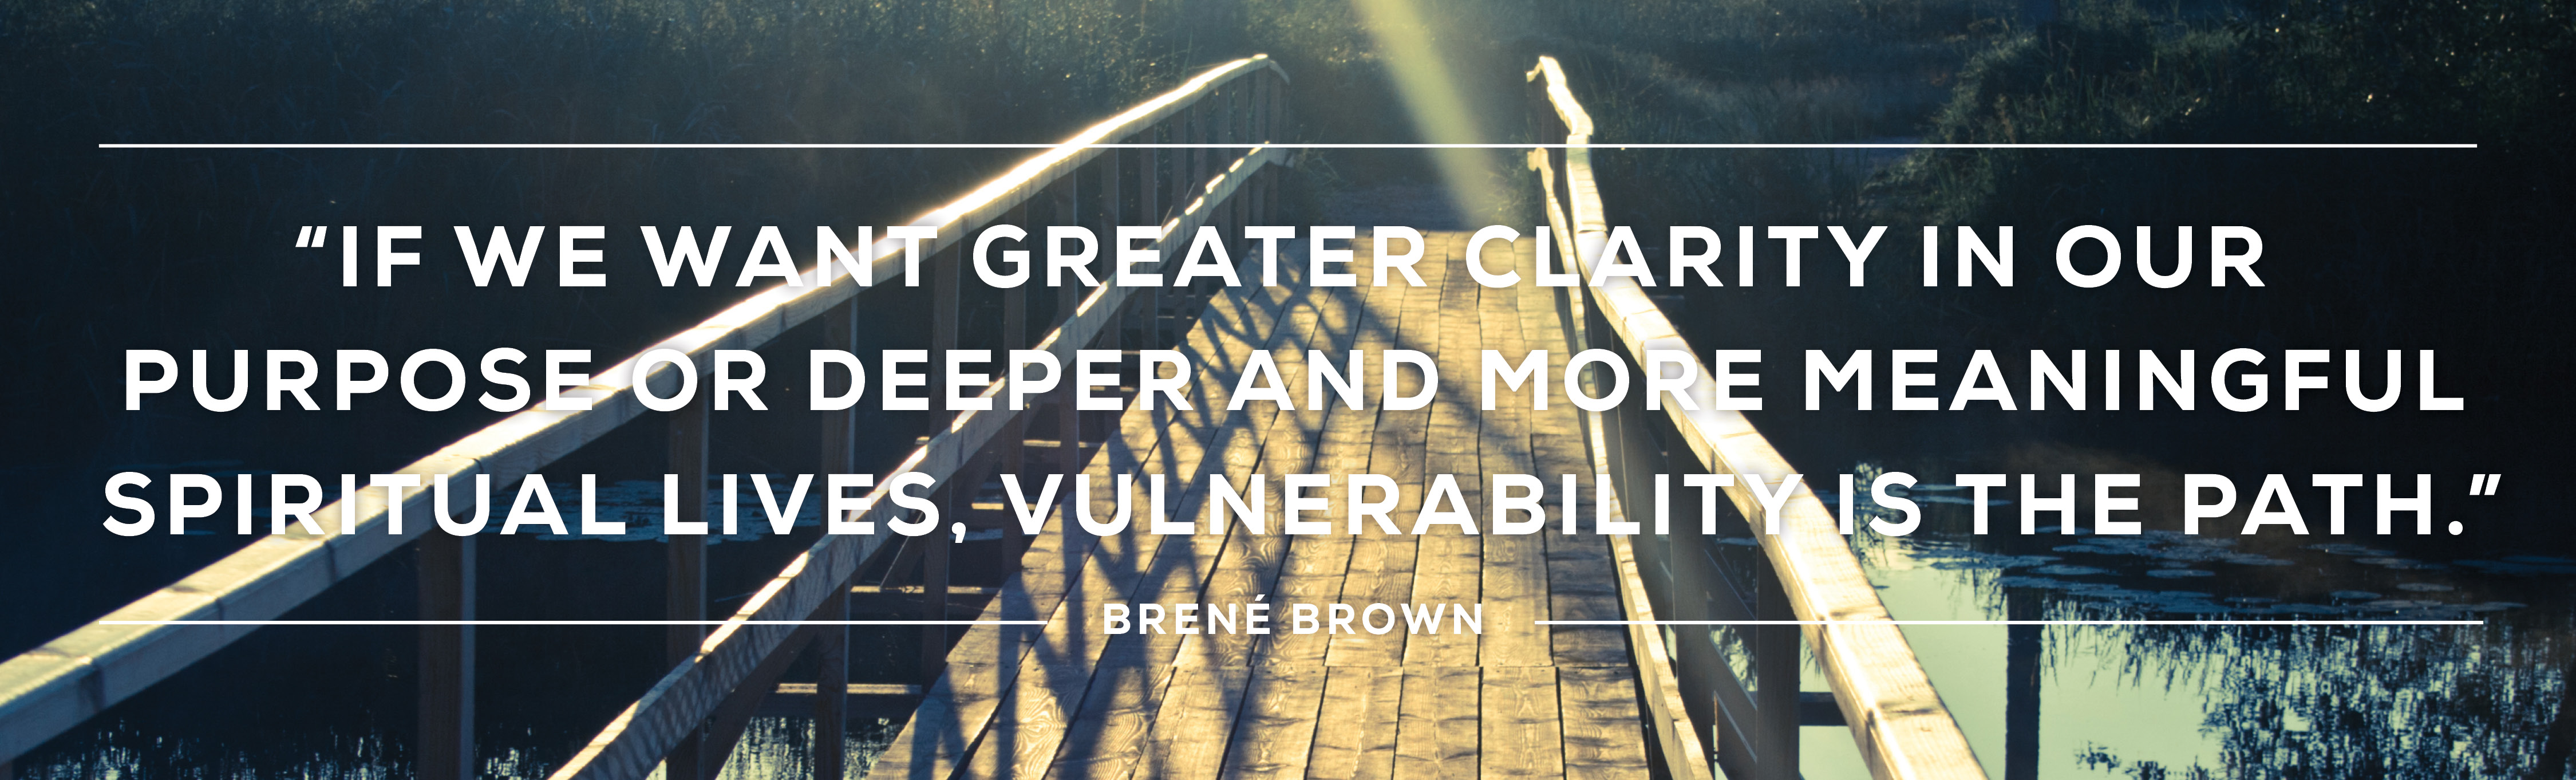 Vulnerability is the path to deeper more meaningful lives: Brené Brown for The Daring Way offered in Winnipeg, Manitoba